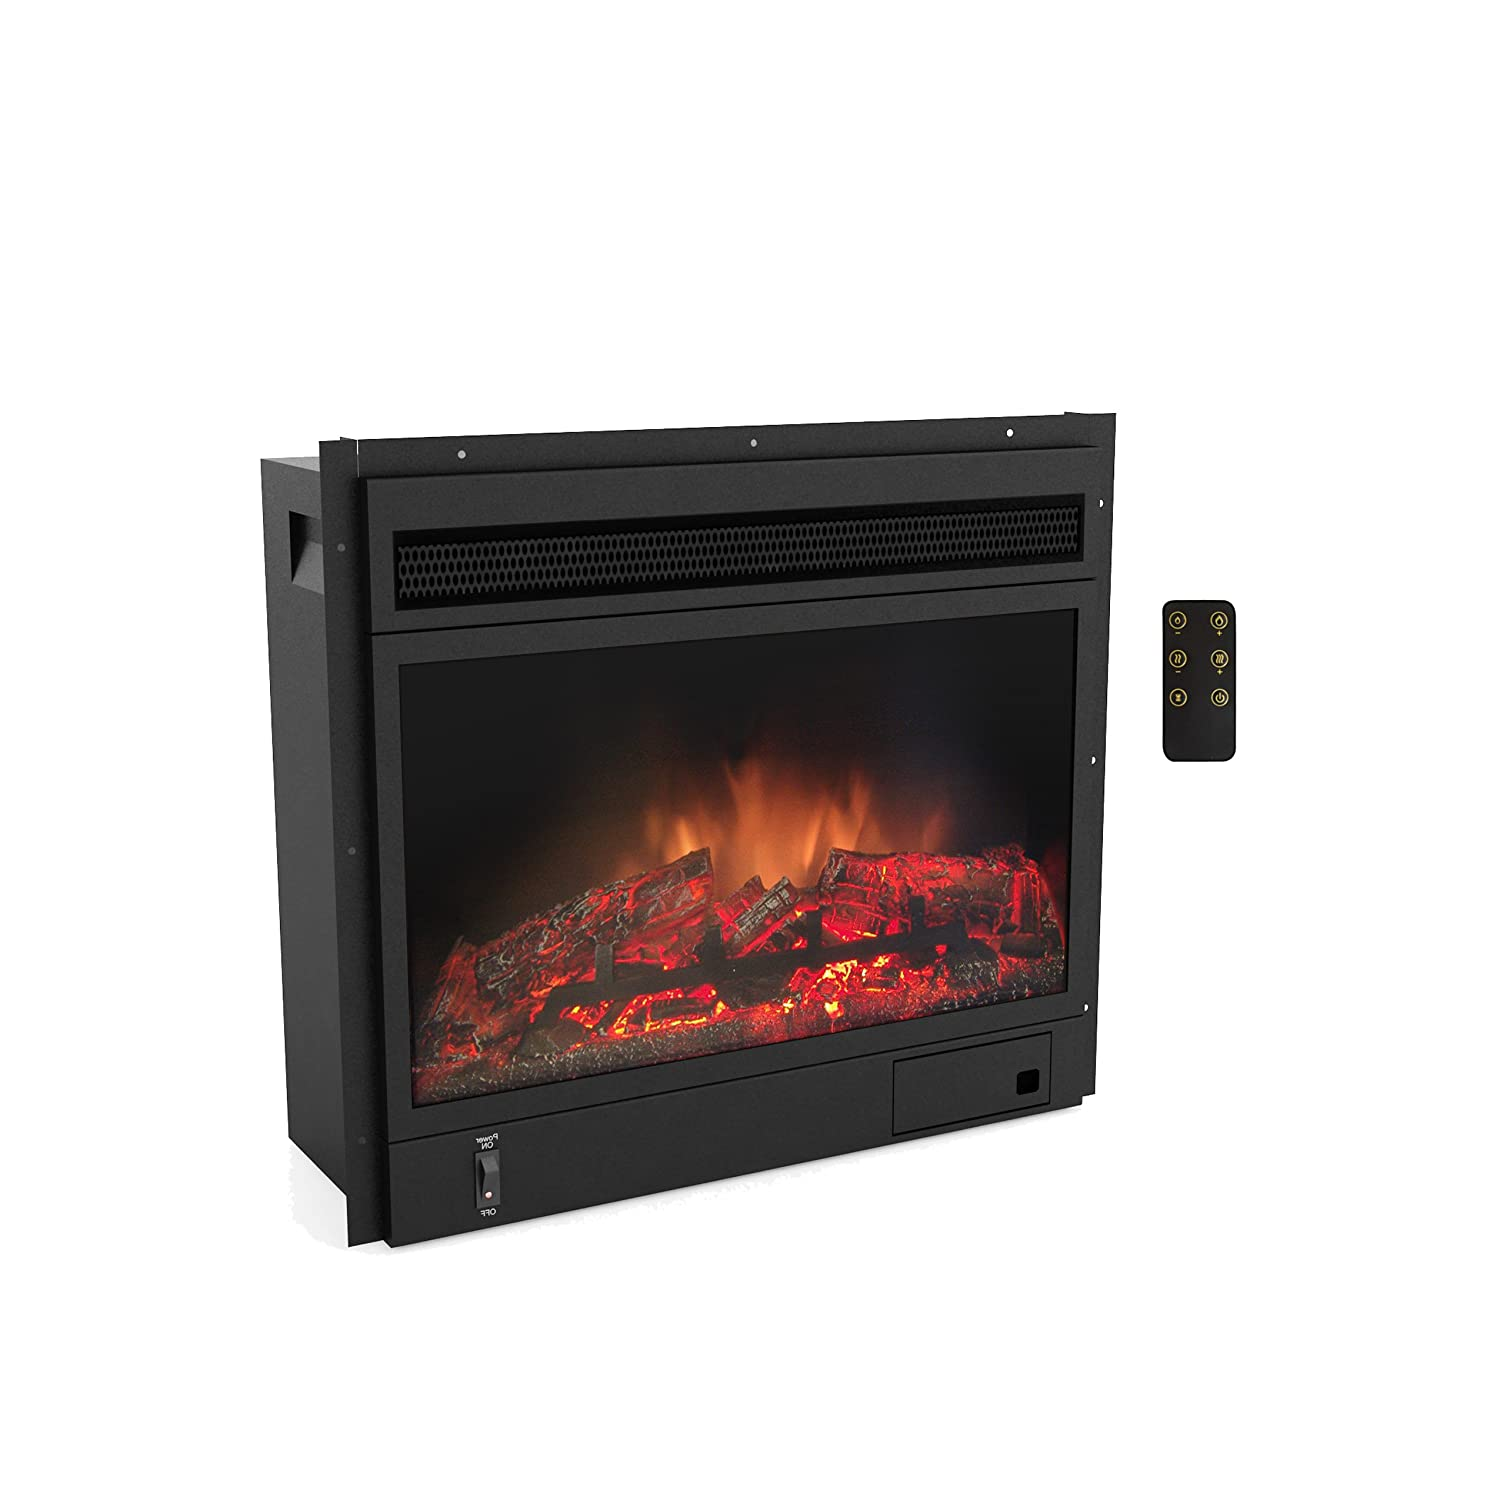 amazon com corliving e 0001 epf sonax electric fireplace kitchen